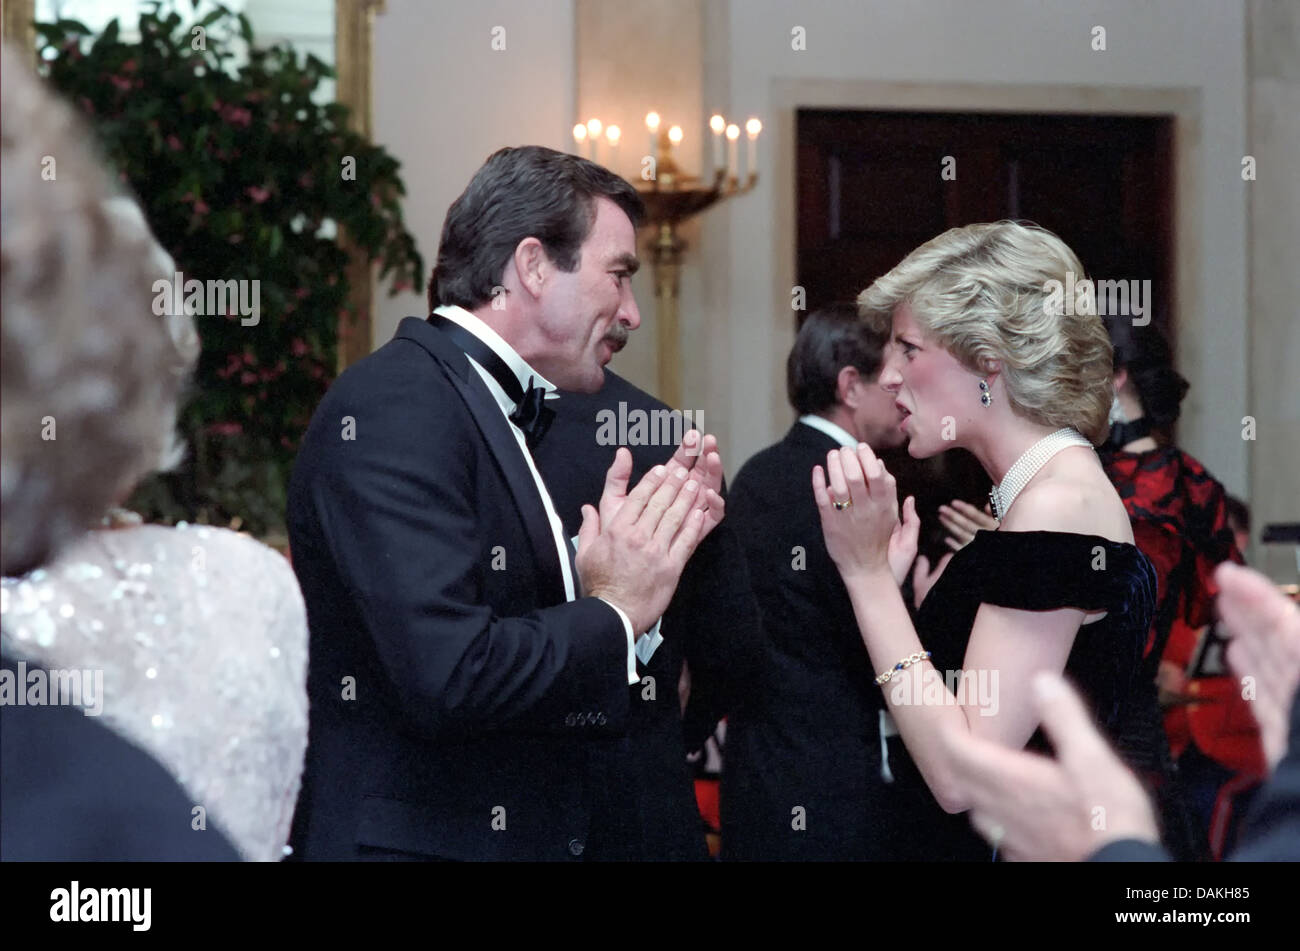 Diana, Princess of Wales dances with actor Tom Selleck during a White House Gala Dinner November 9, 1985 in Washington, DC. Stock Photo